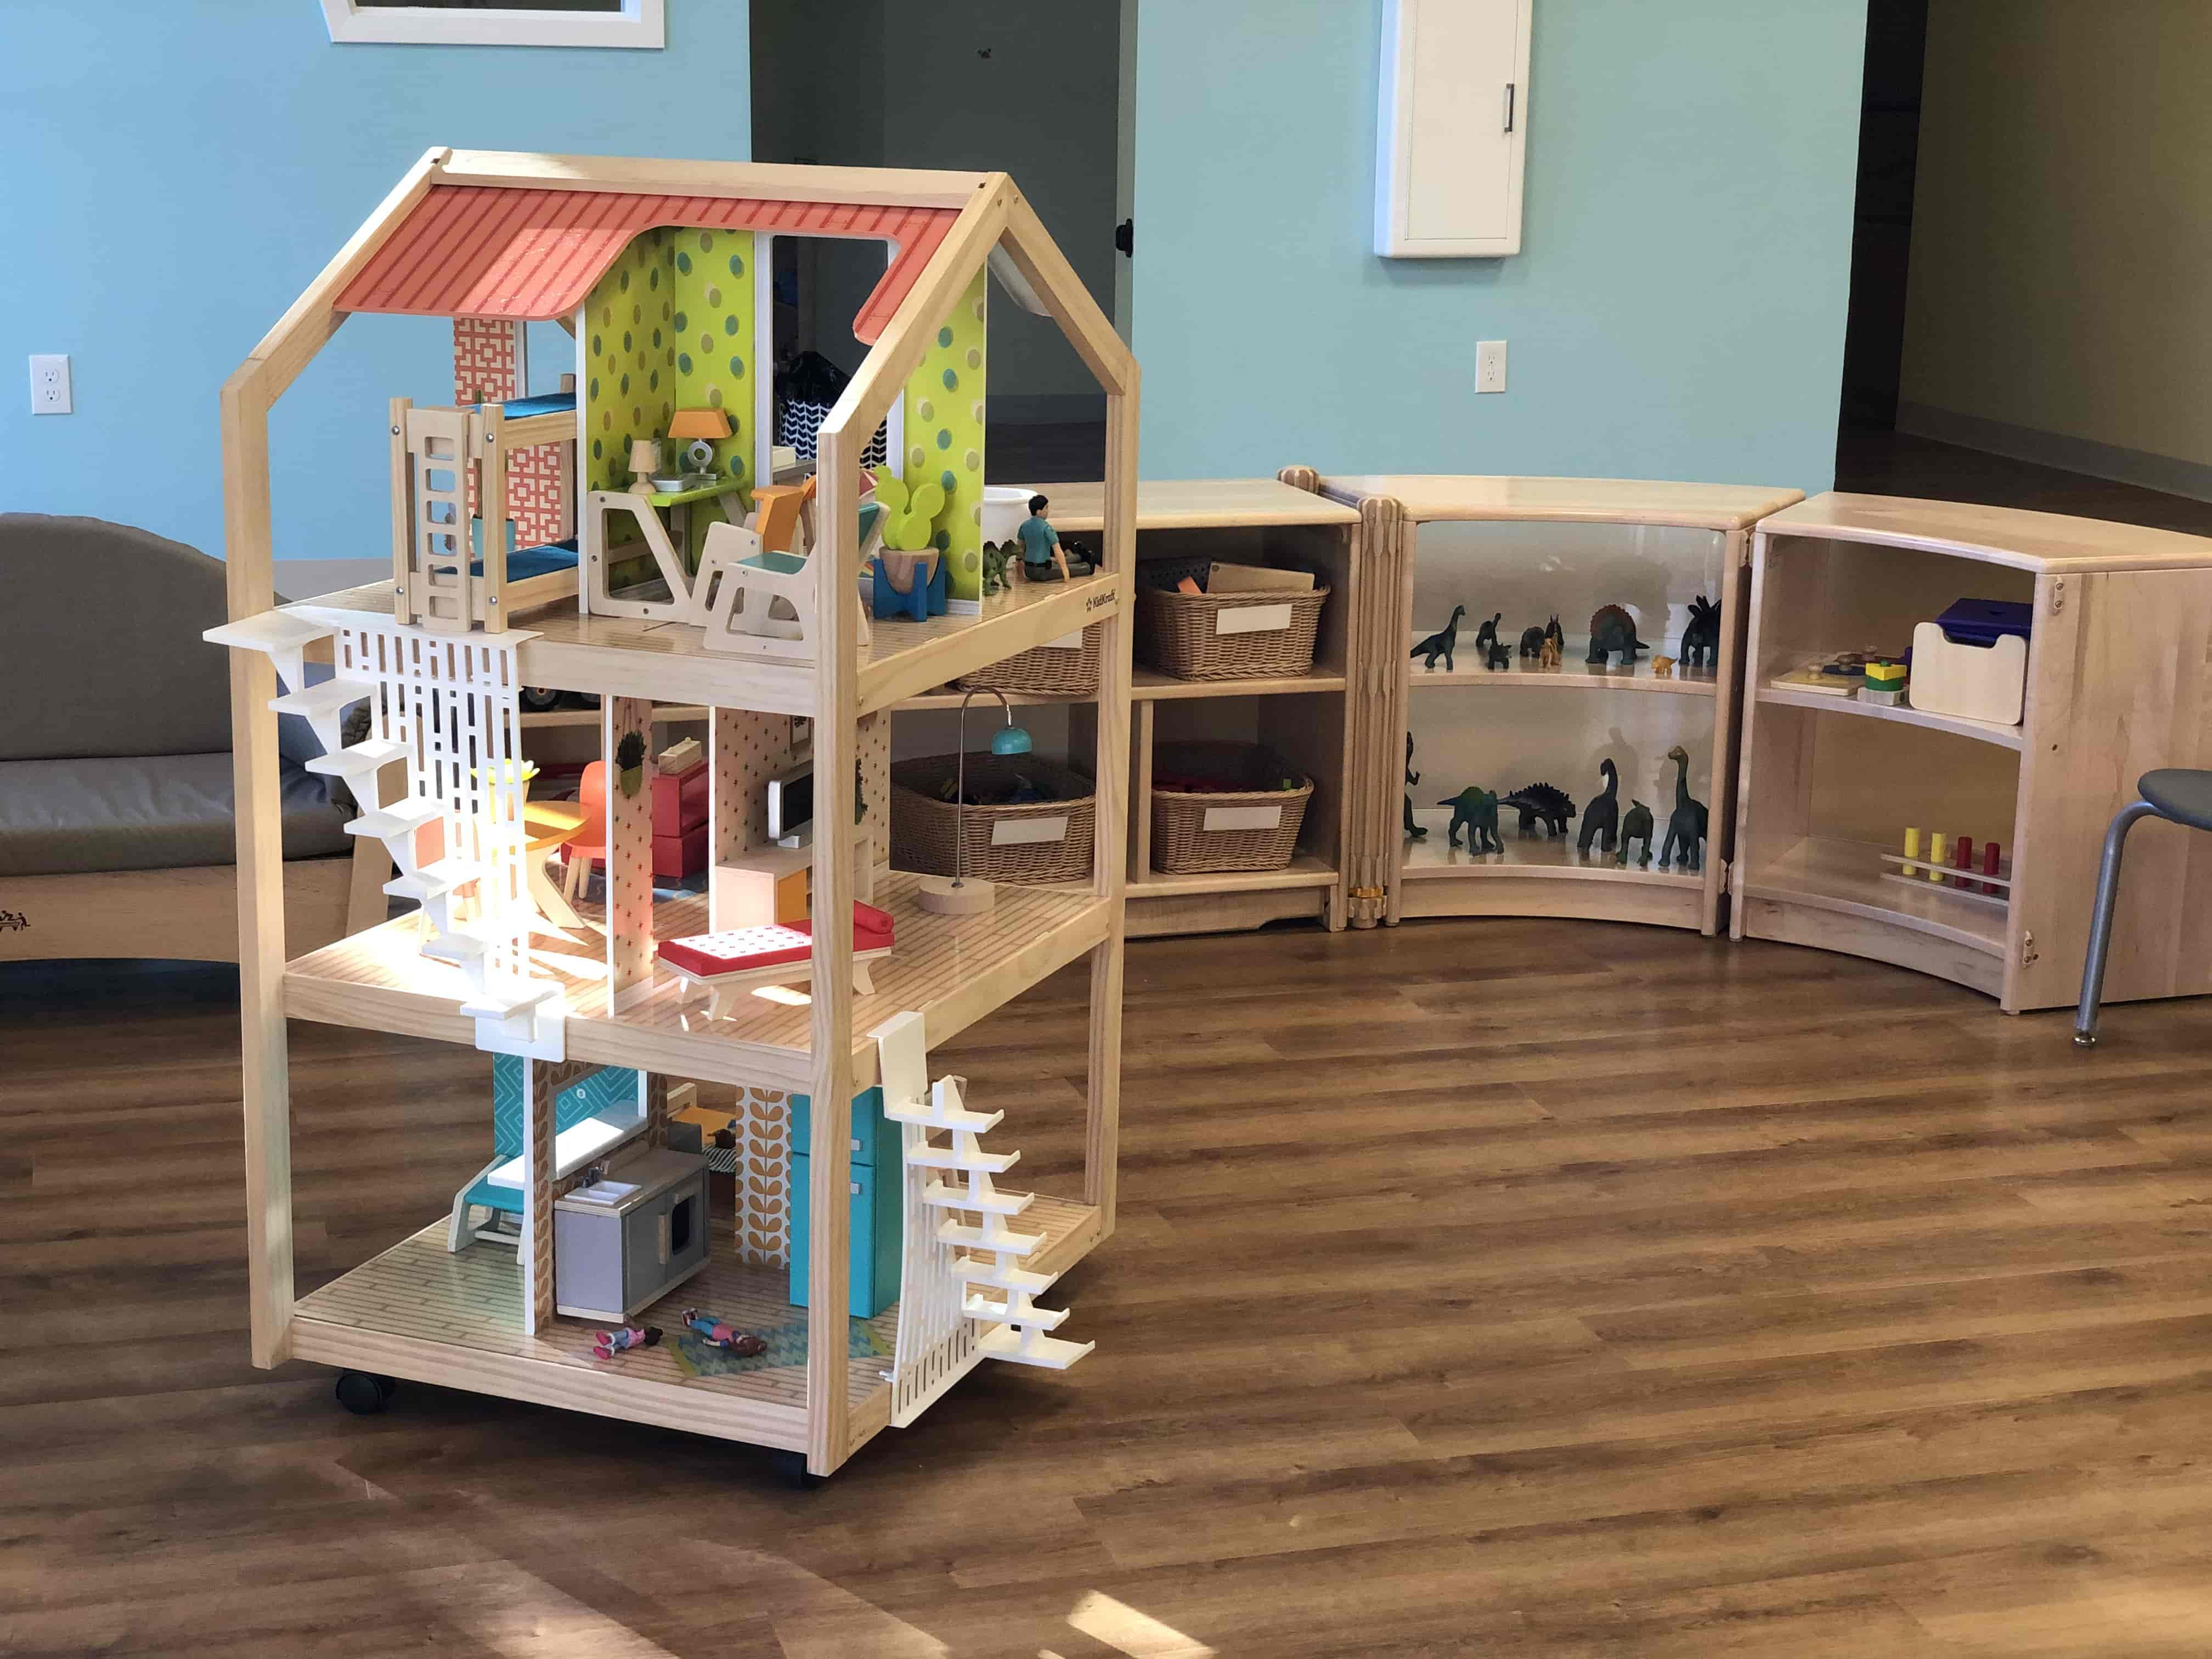 Dollhouse and dinosaurs